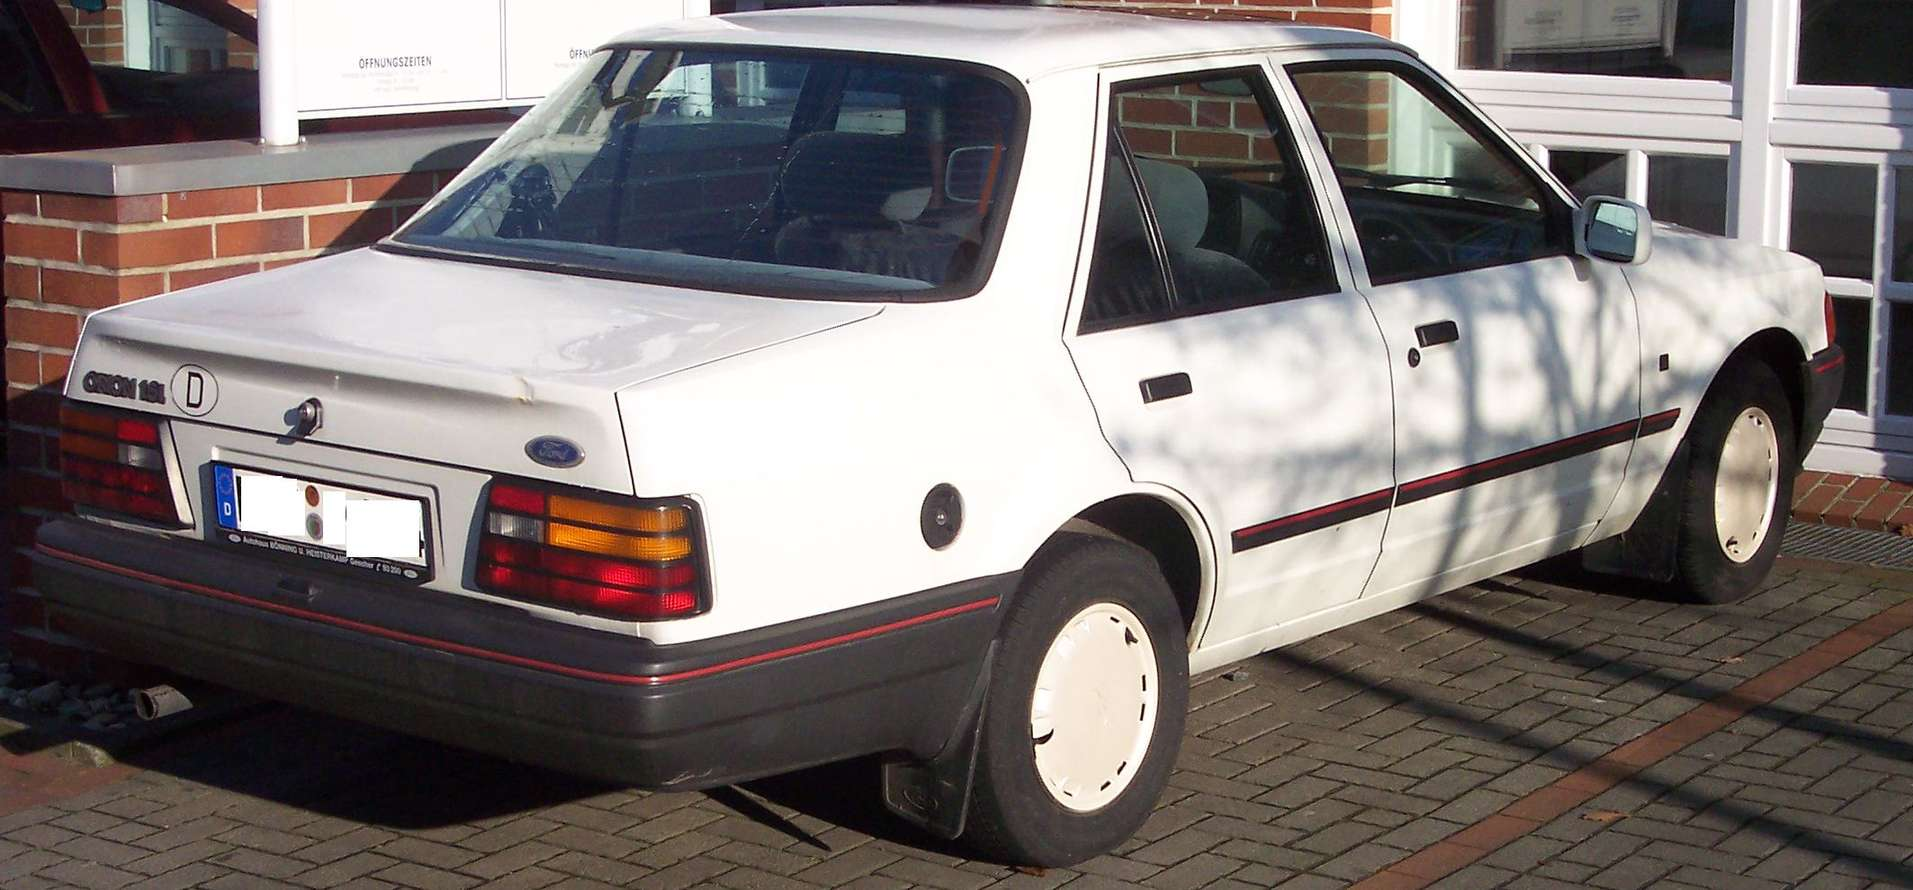 Ford Orion #7931891